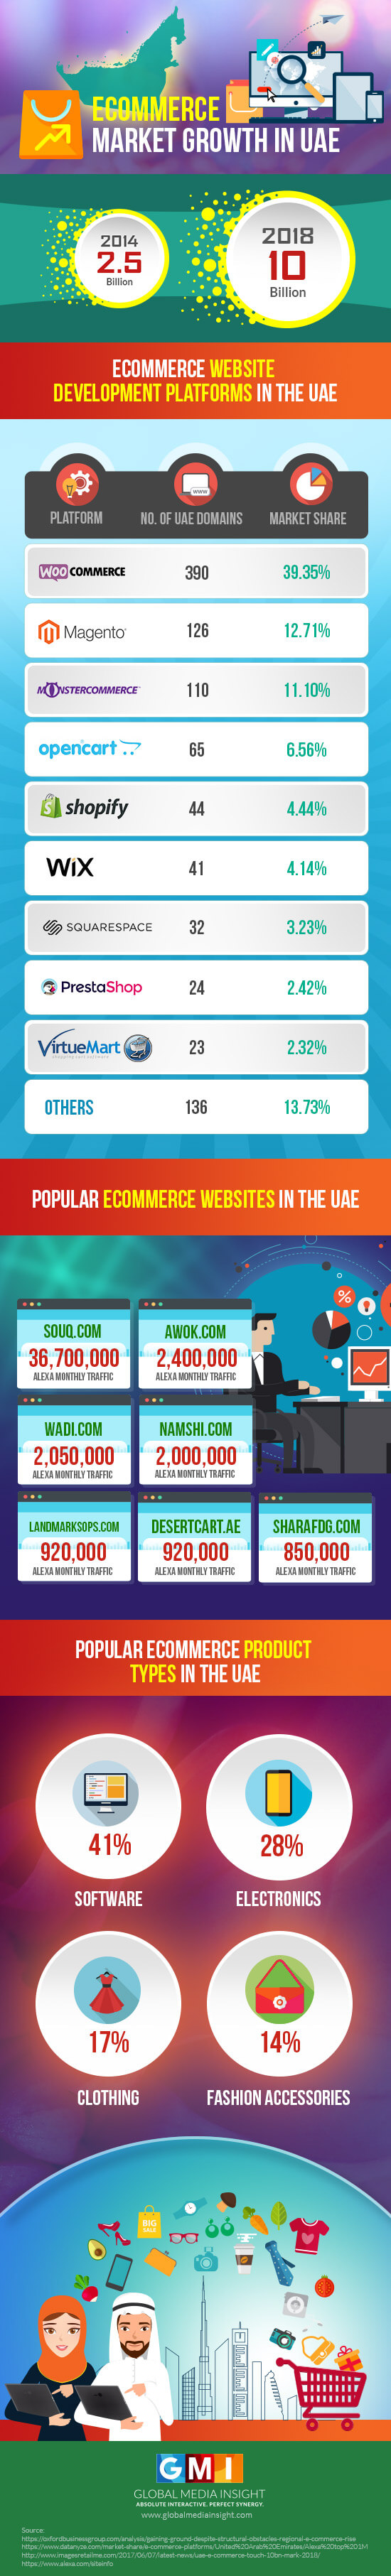 UAE e-Commerce Market Trends & Development Platforms [Infographic]